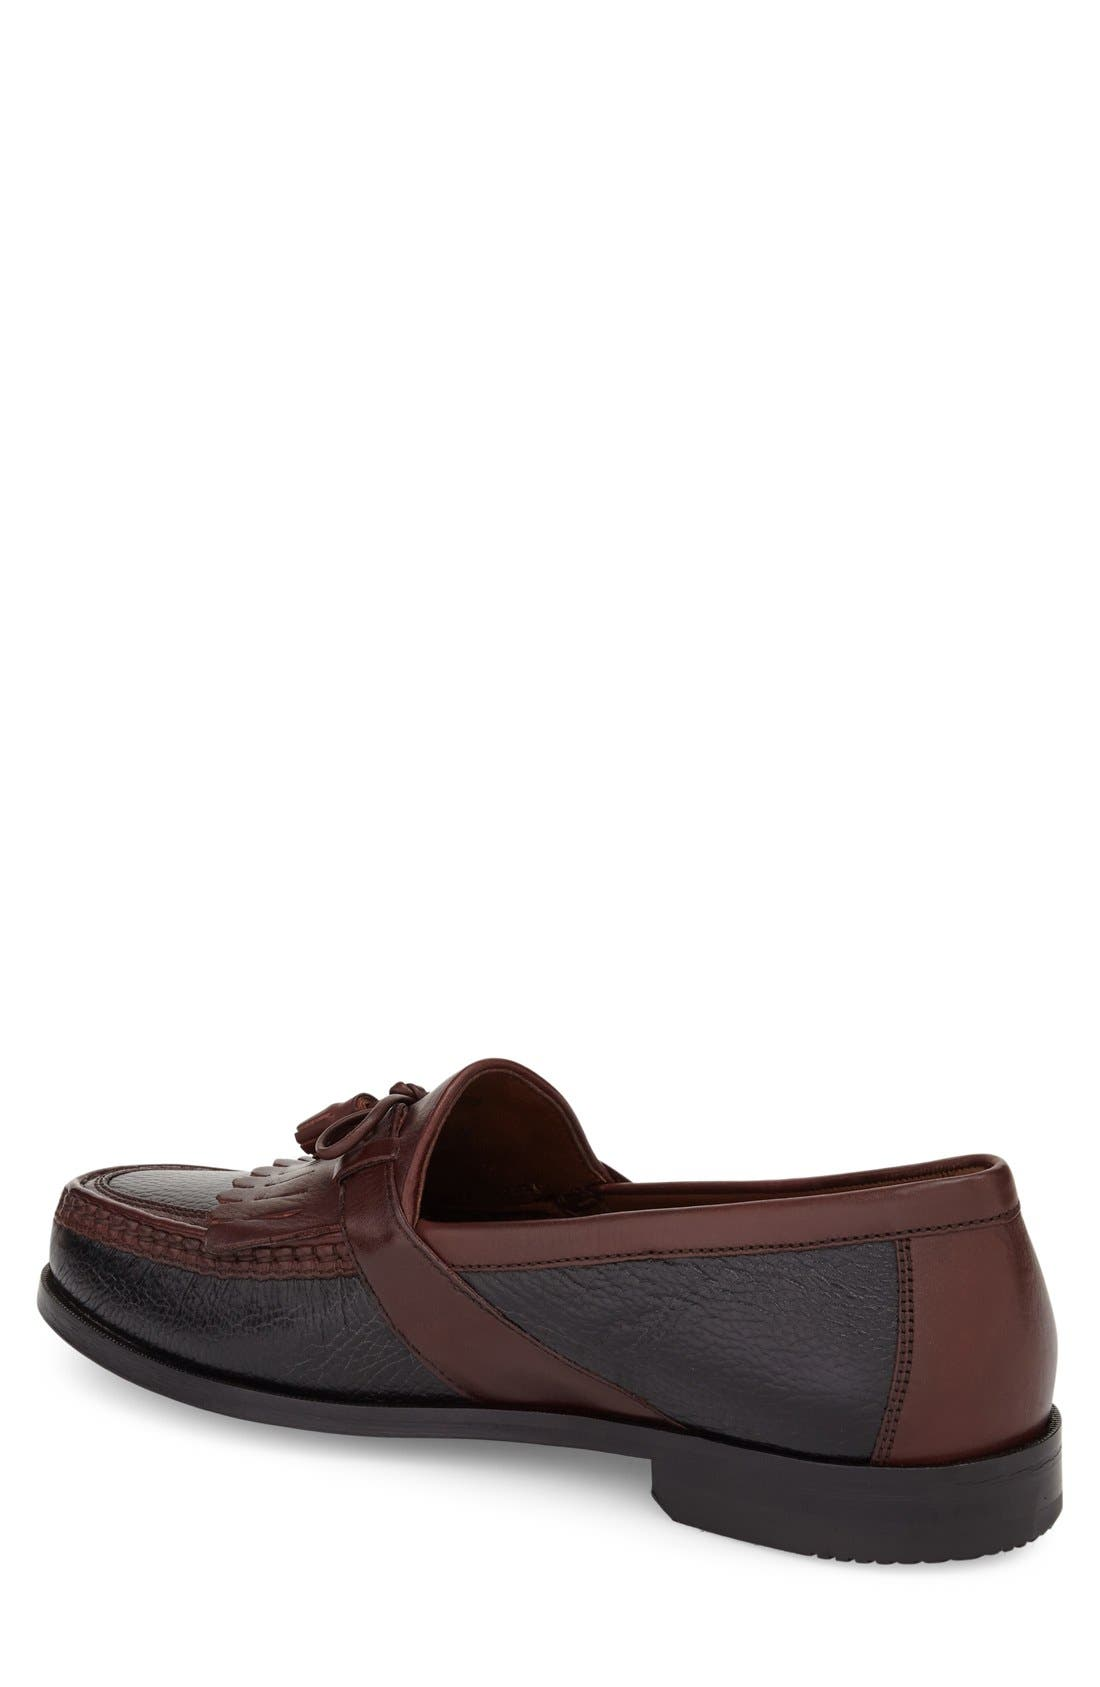 Alternate Image 2  - Johnston & Murphy 'Aragon II' Loafer